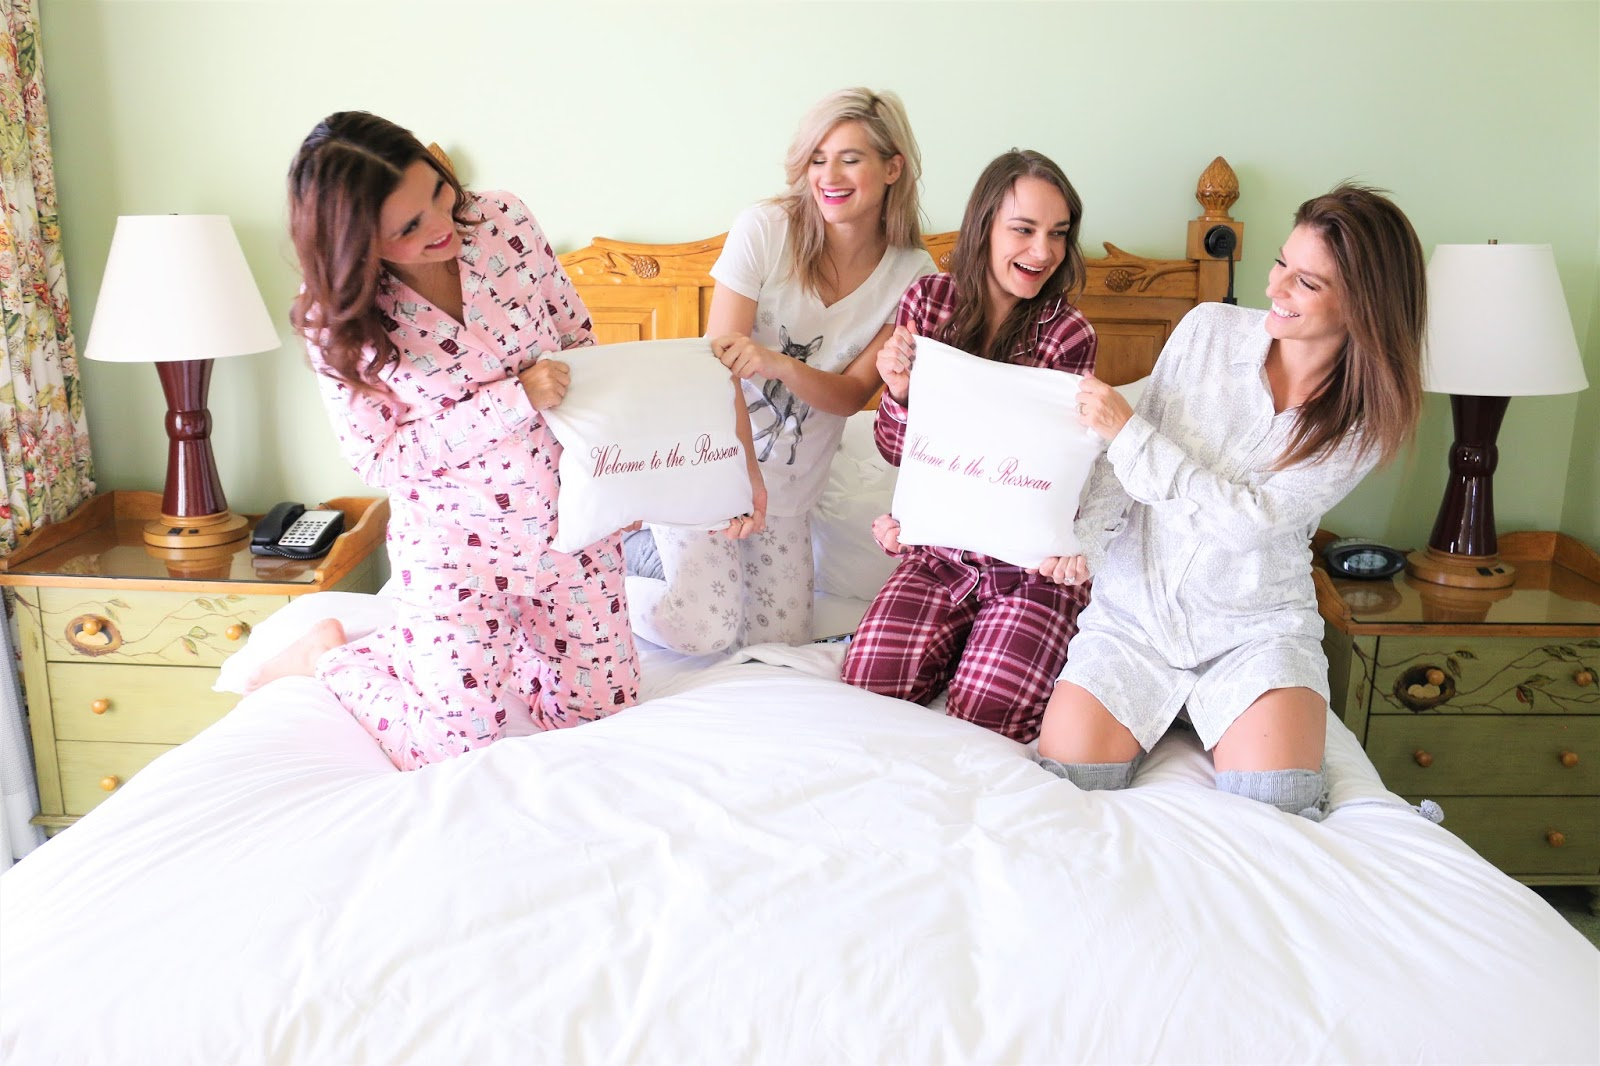 Bijuleni - 3 Things to Pack for a Girls Trip in the Fall - Cozy pjs for pillow fights - Friendship goals